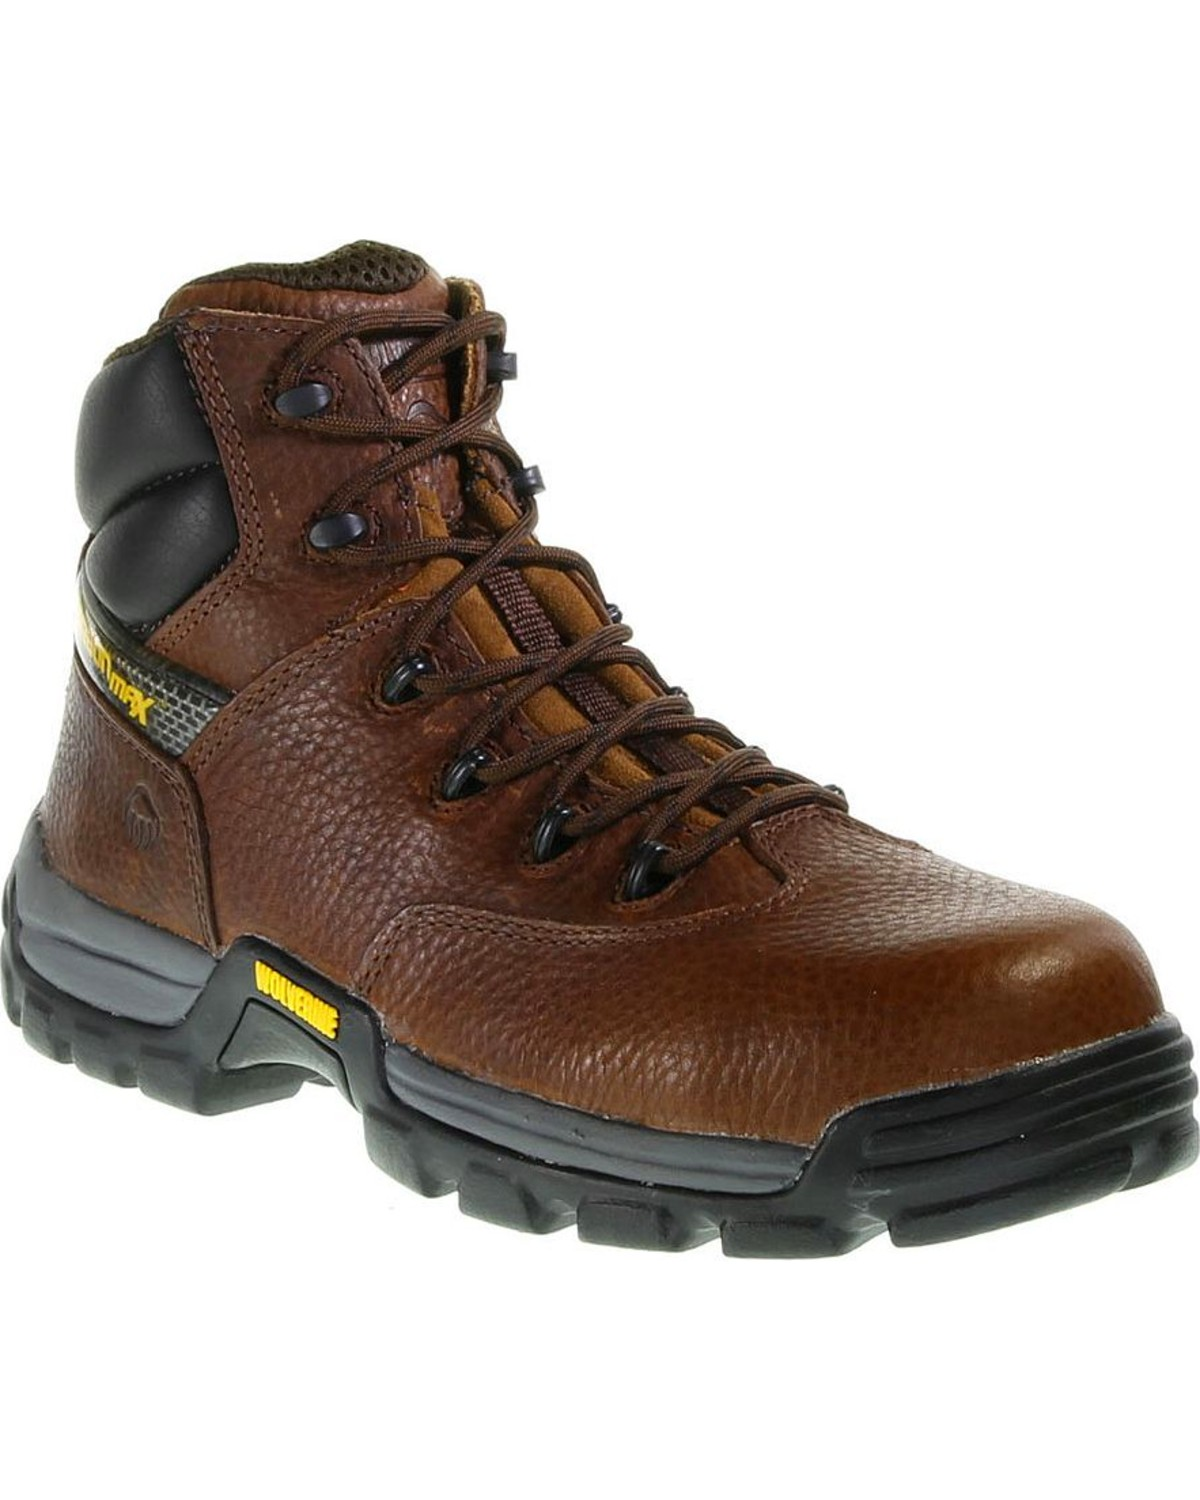 2b8ed321b57 Wolverine Men's Guardian CarbonMAX® Safety Toe Work Boots